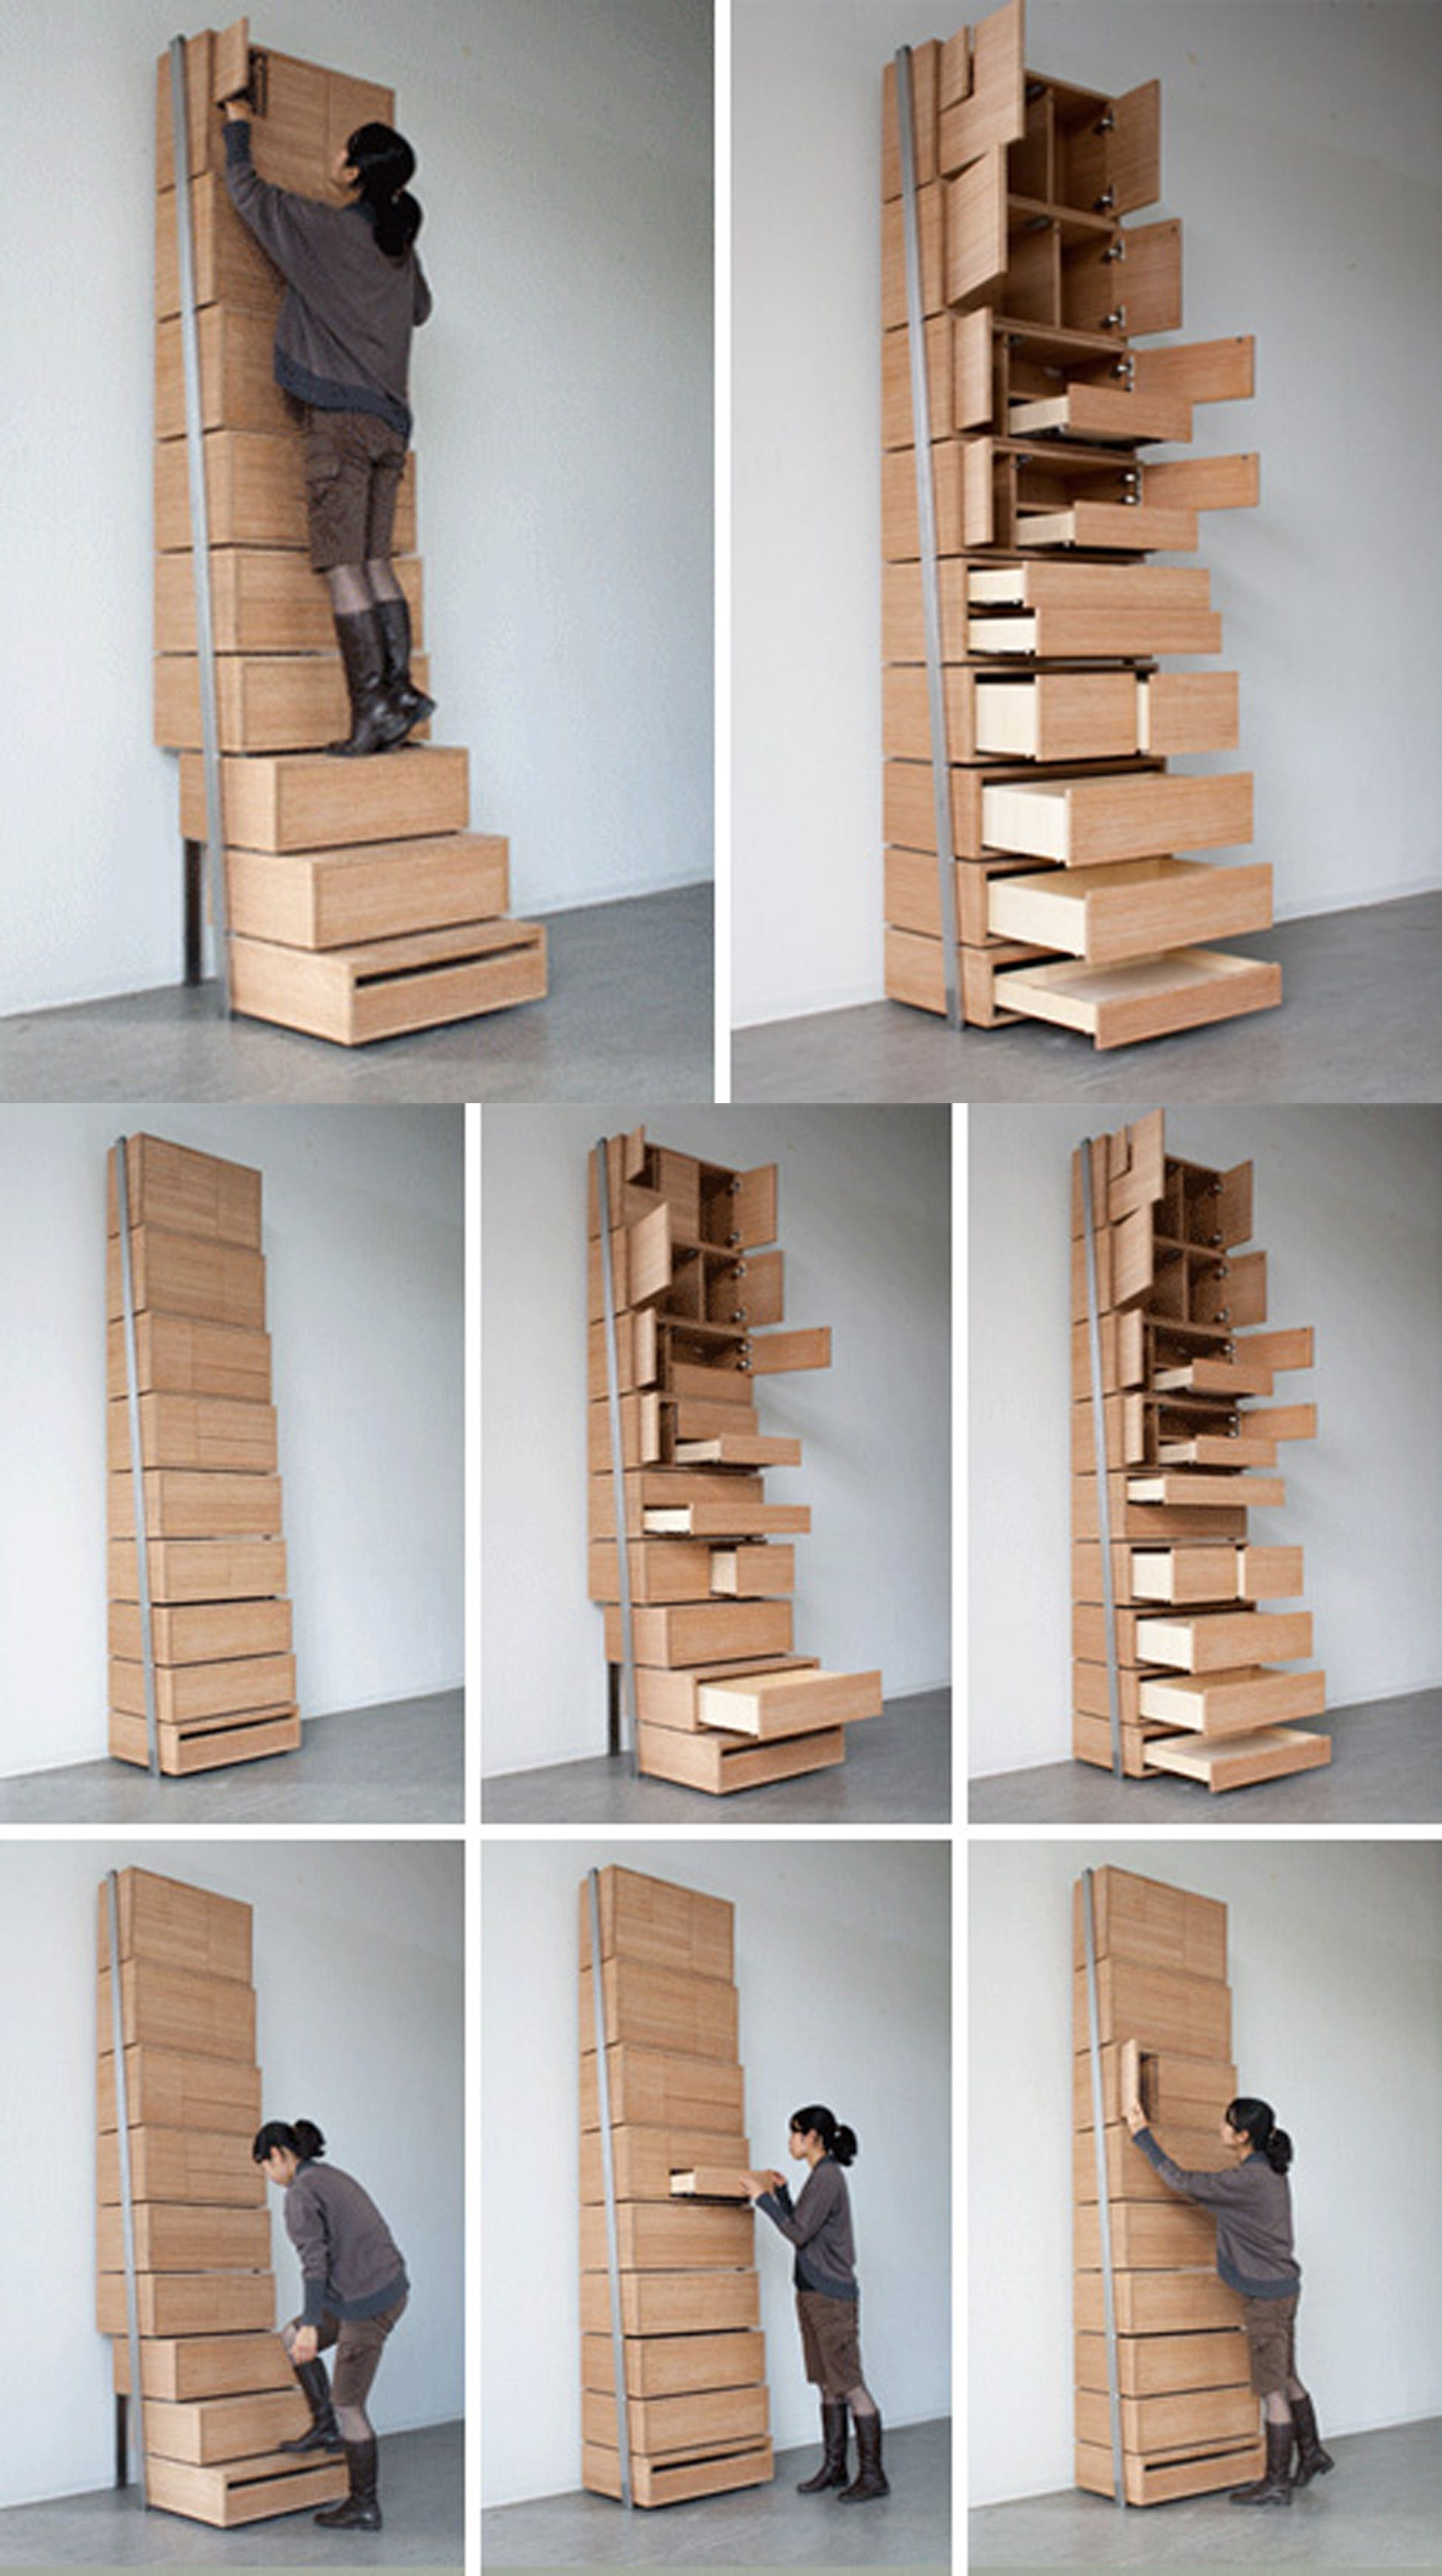 Vertical Staircase Shelf By Danny Kuo Crafts Pinterest Diy - Staircase-storage-by-danny-kuo